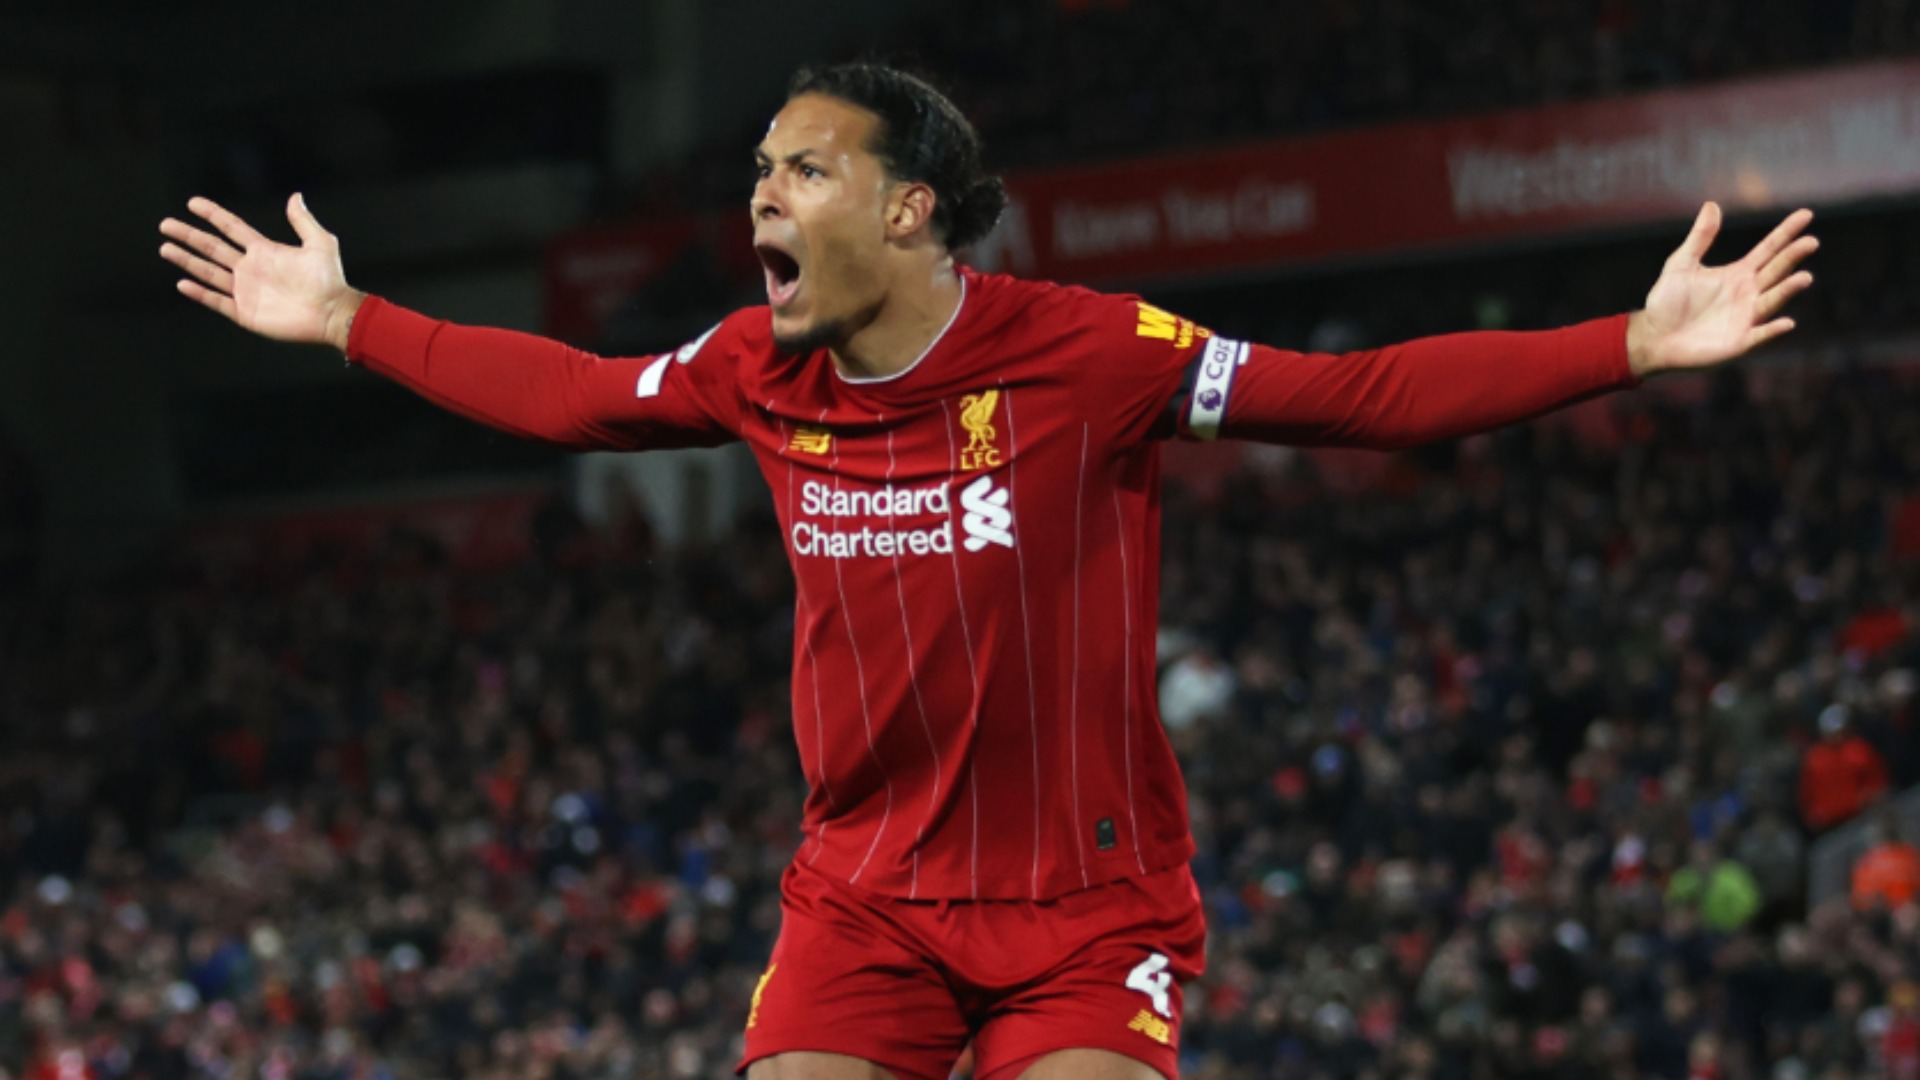 Coronavirus: The day Liverpool should have won the title – Red Sox, Drake & other sporting curses